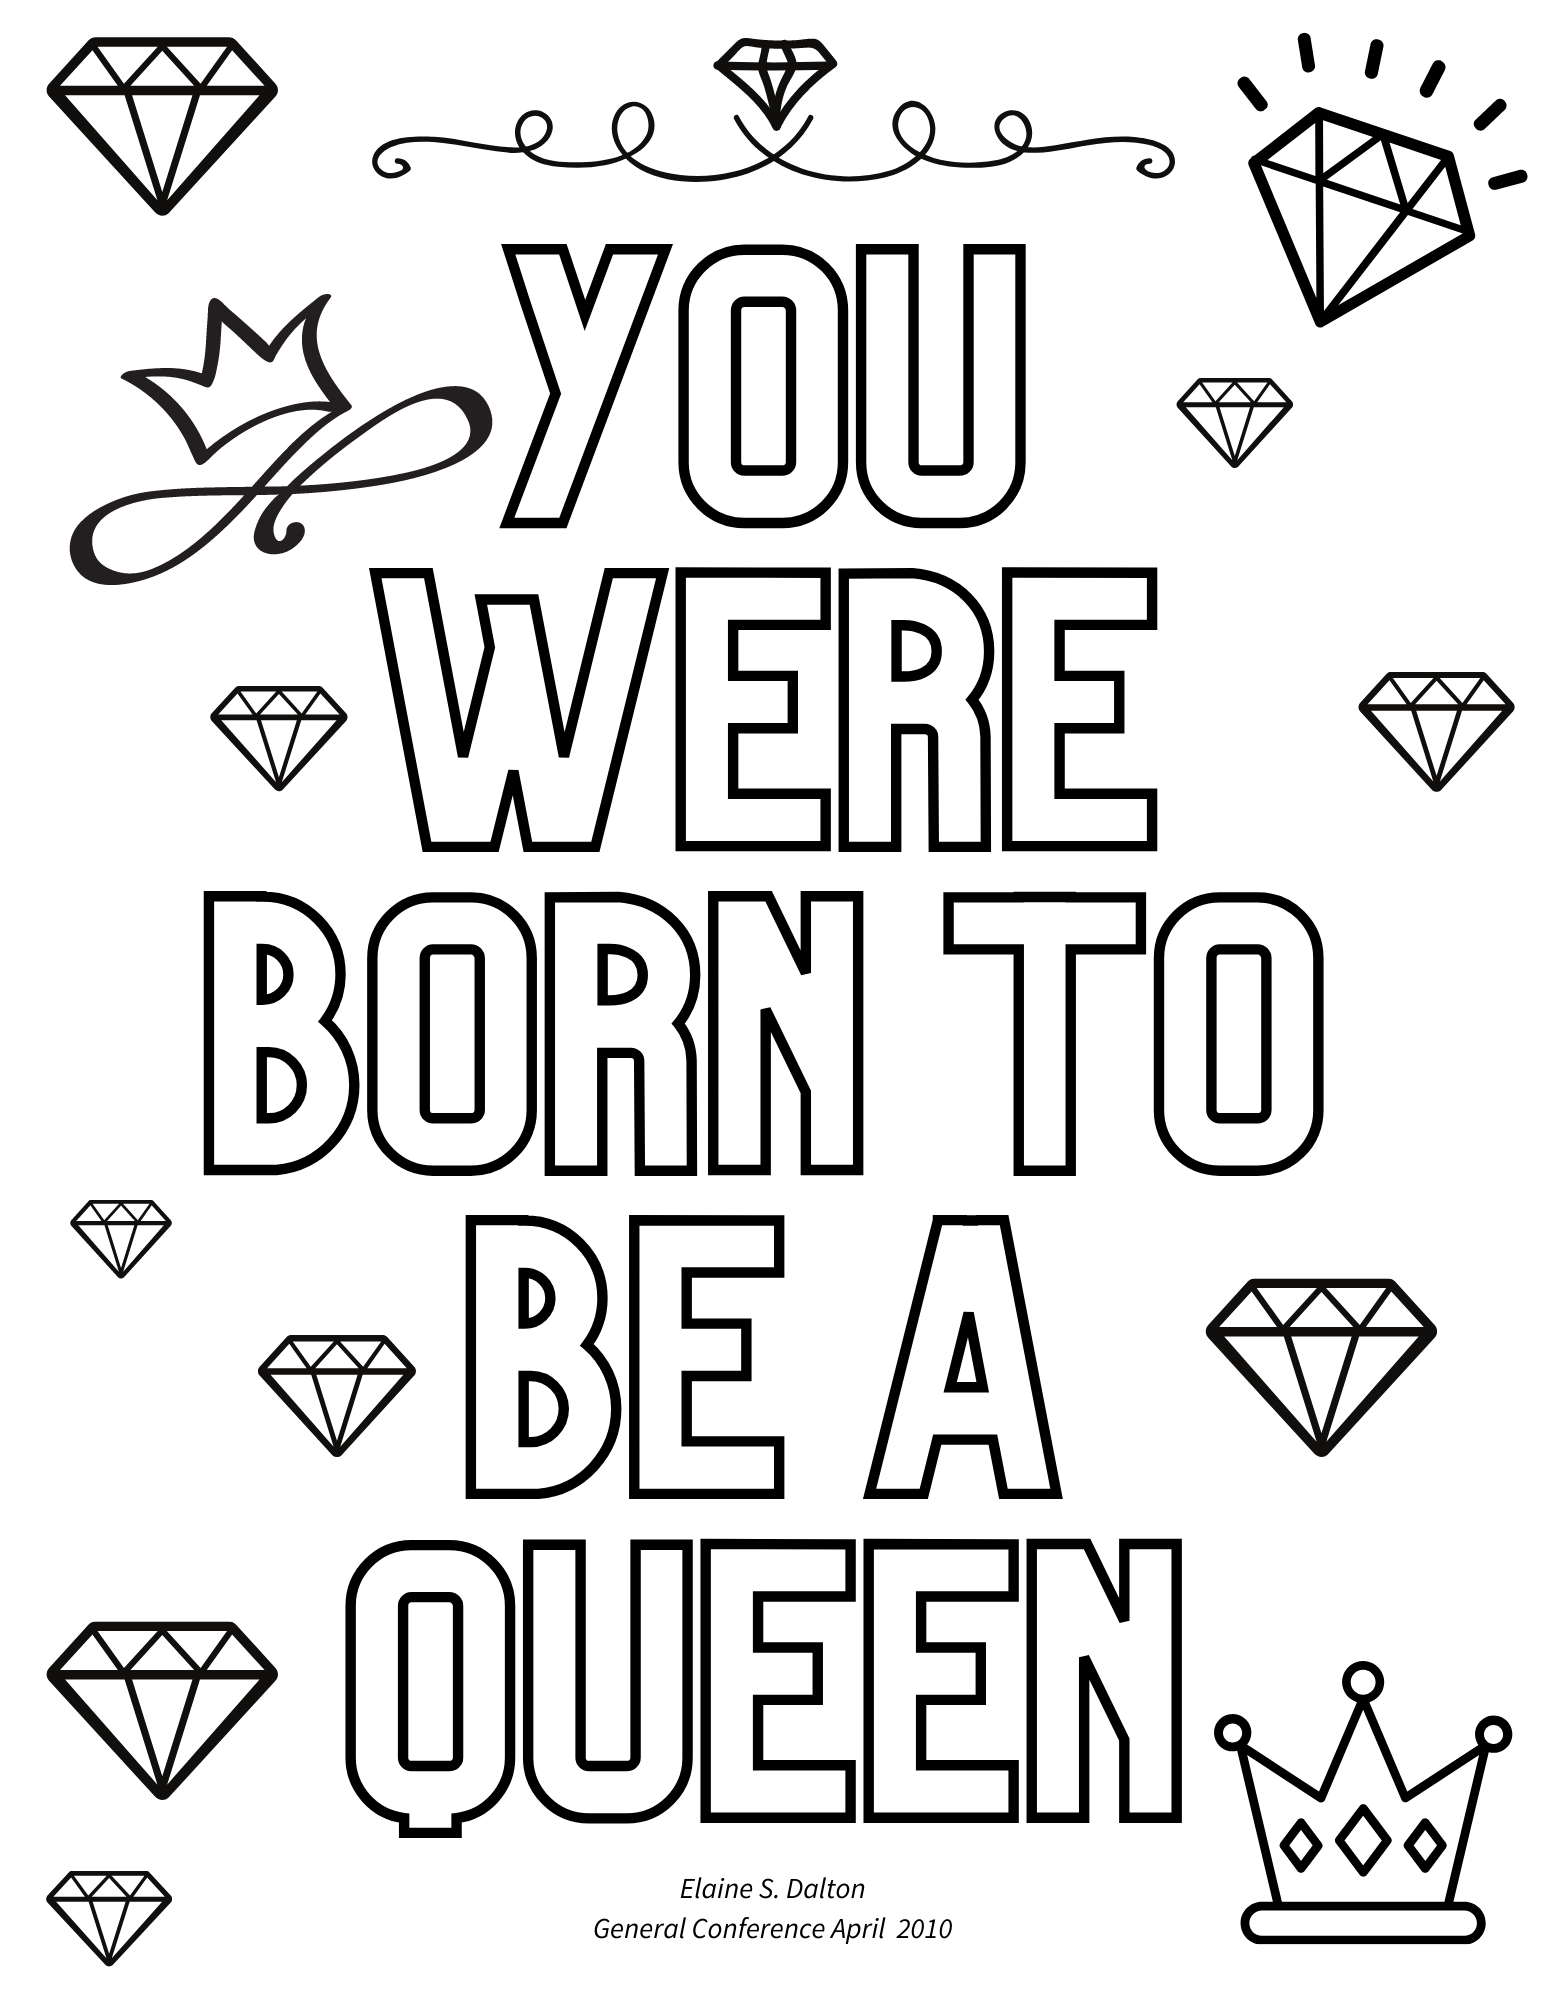 you were born to be a queen quote, elaine s dalton quotes